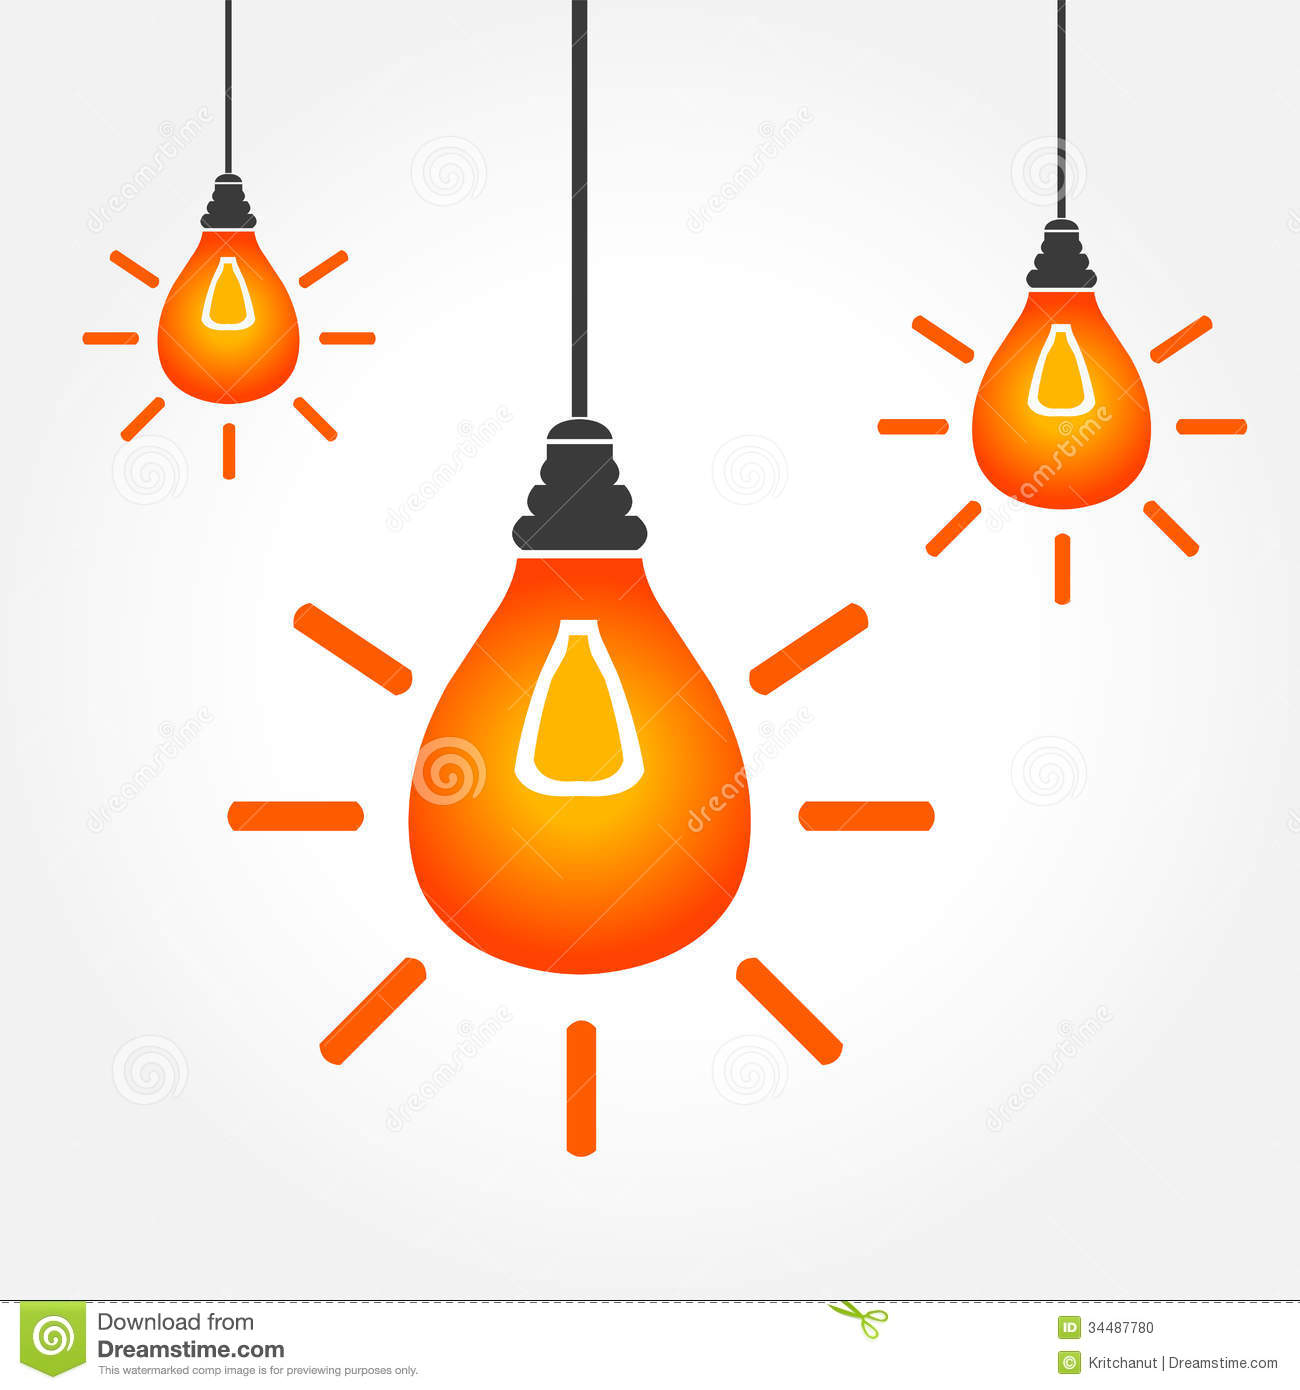 Hanging light bulbs clipart.